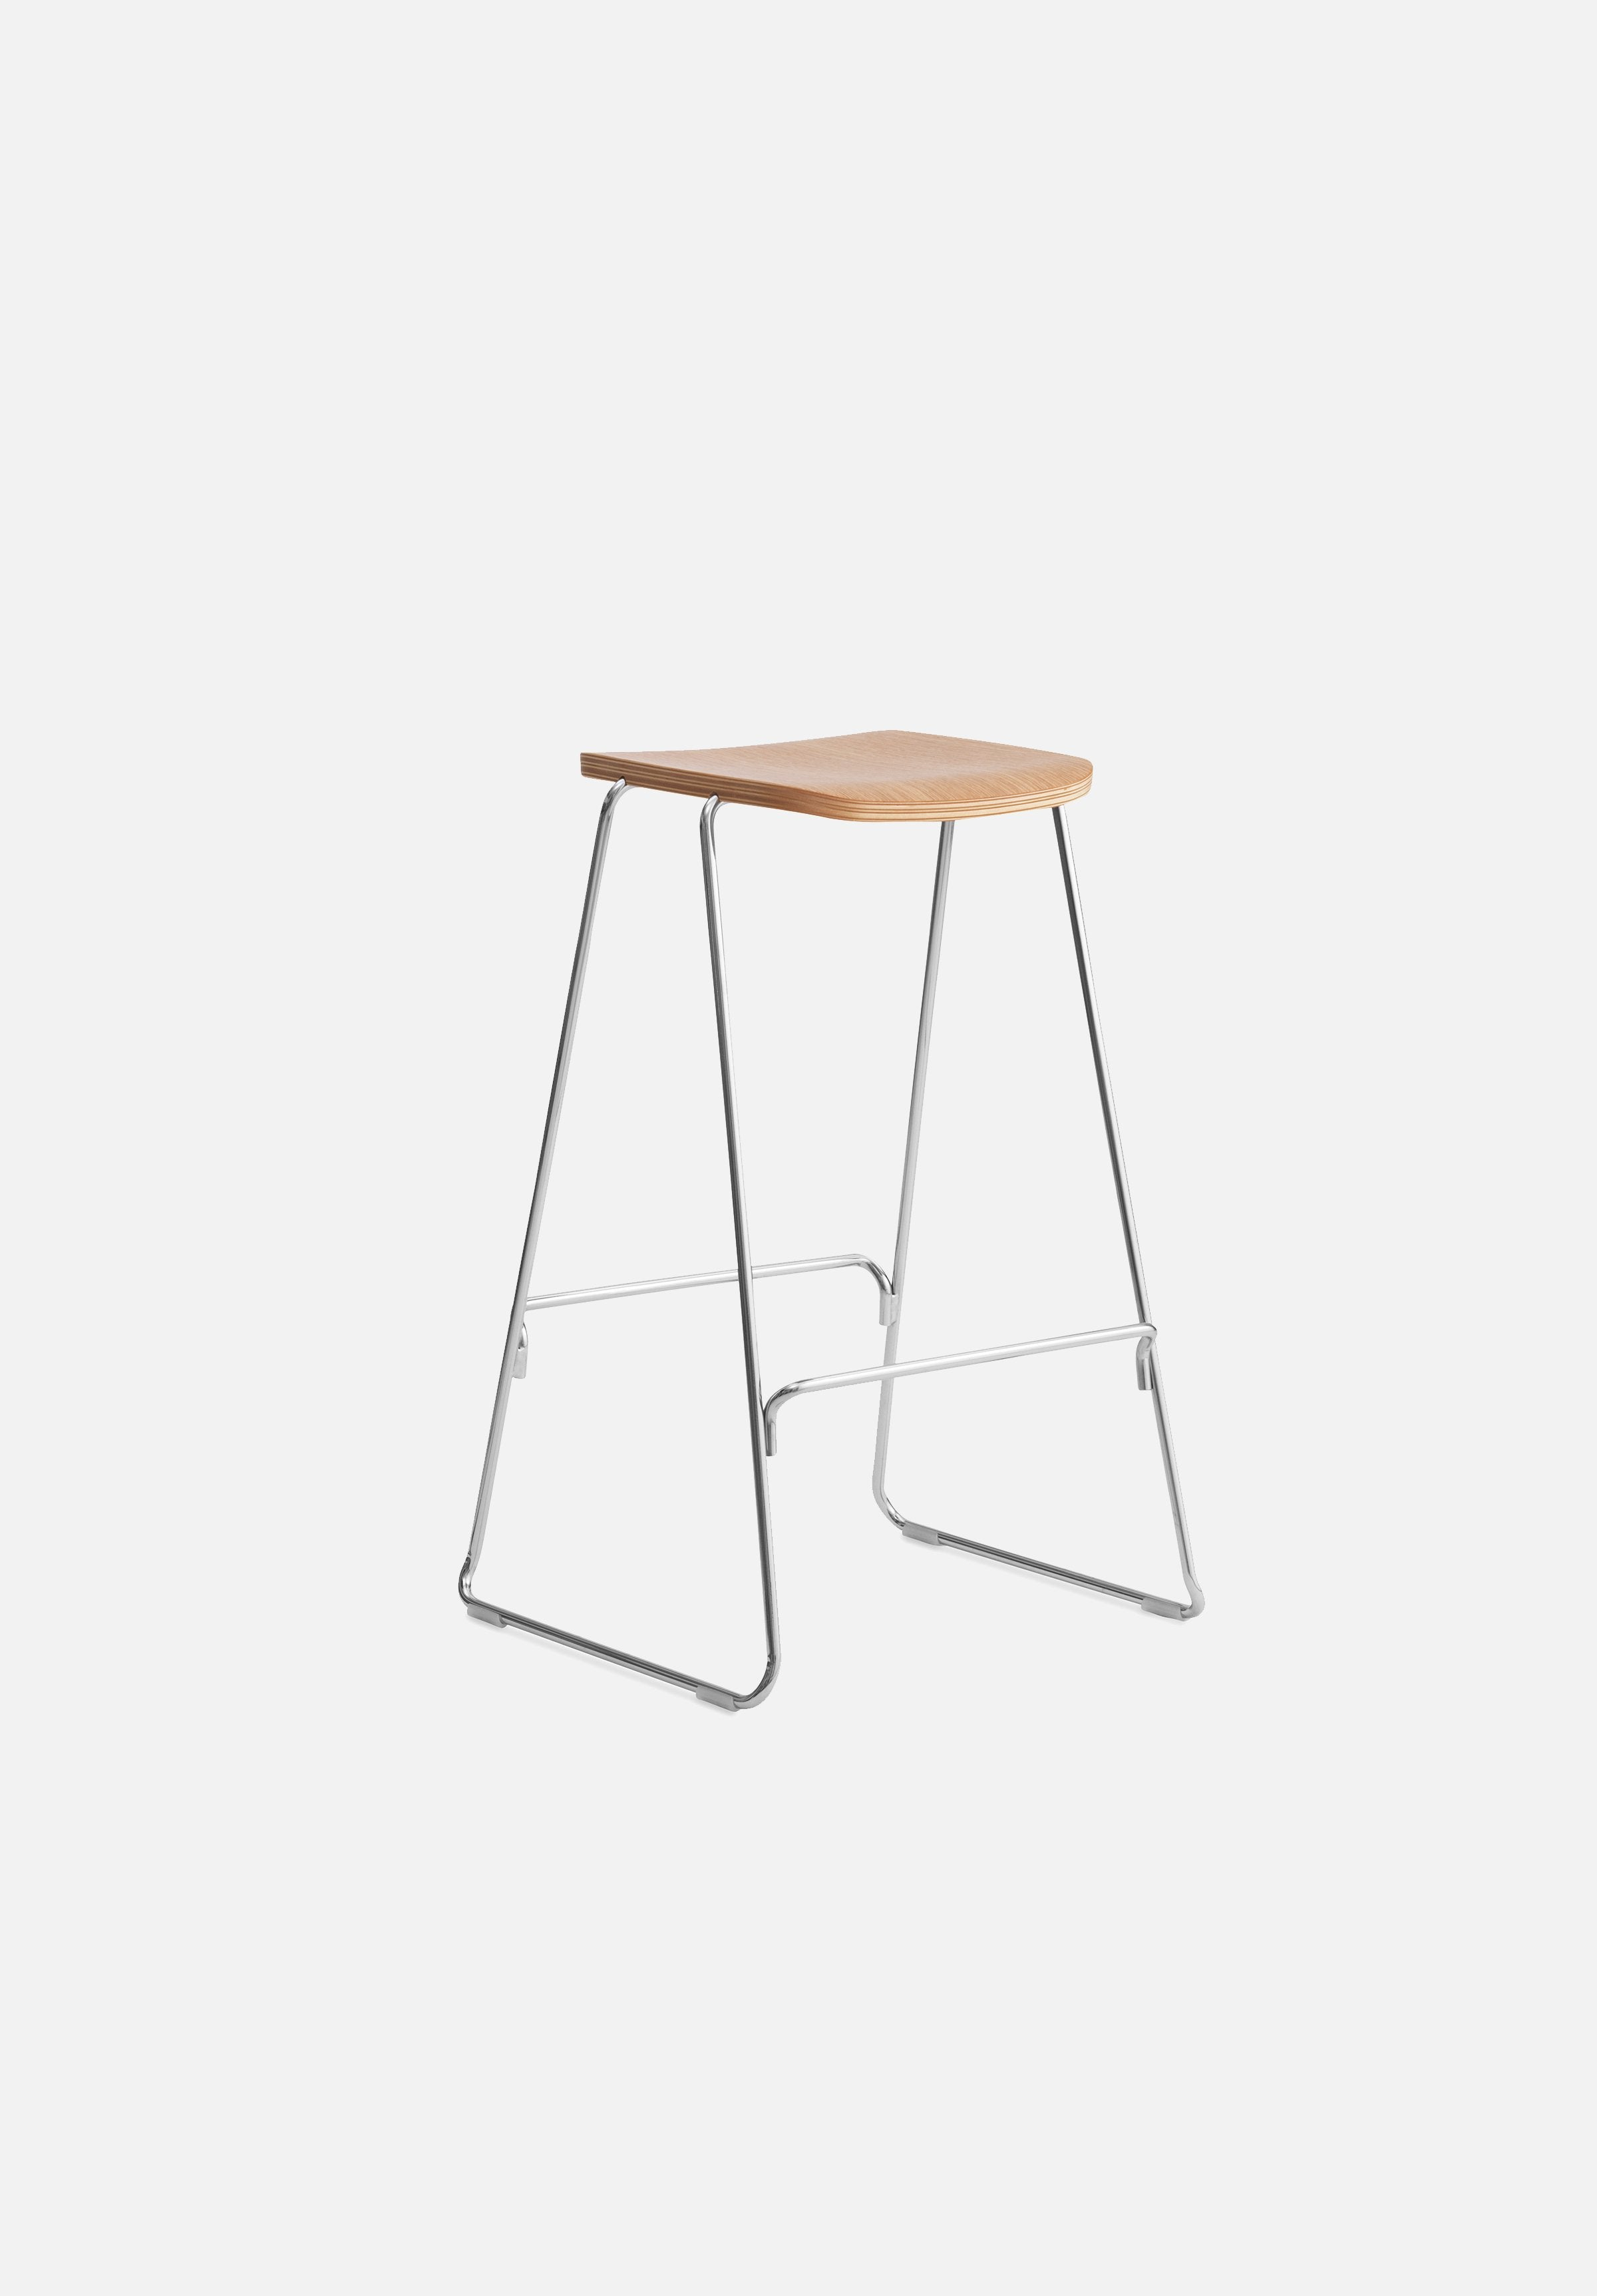 Just Stool-Iskos-Berlin-Normann Copenhagen-Oak-75cm-Without-Average